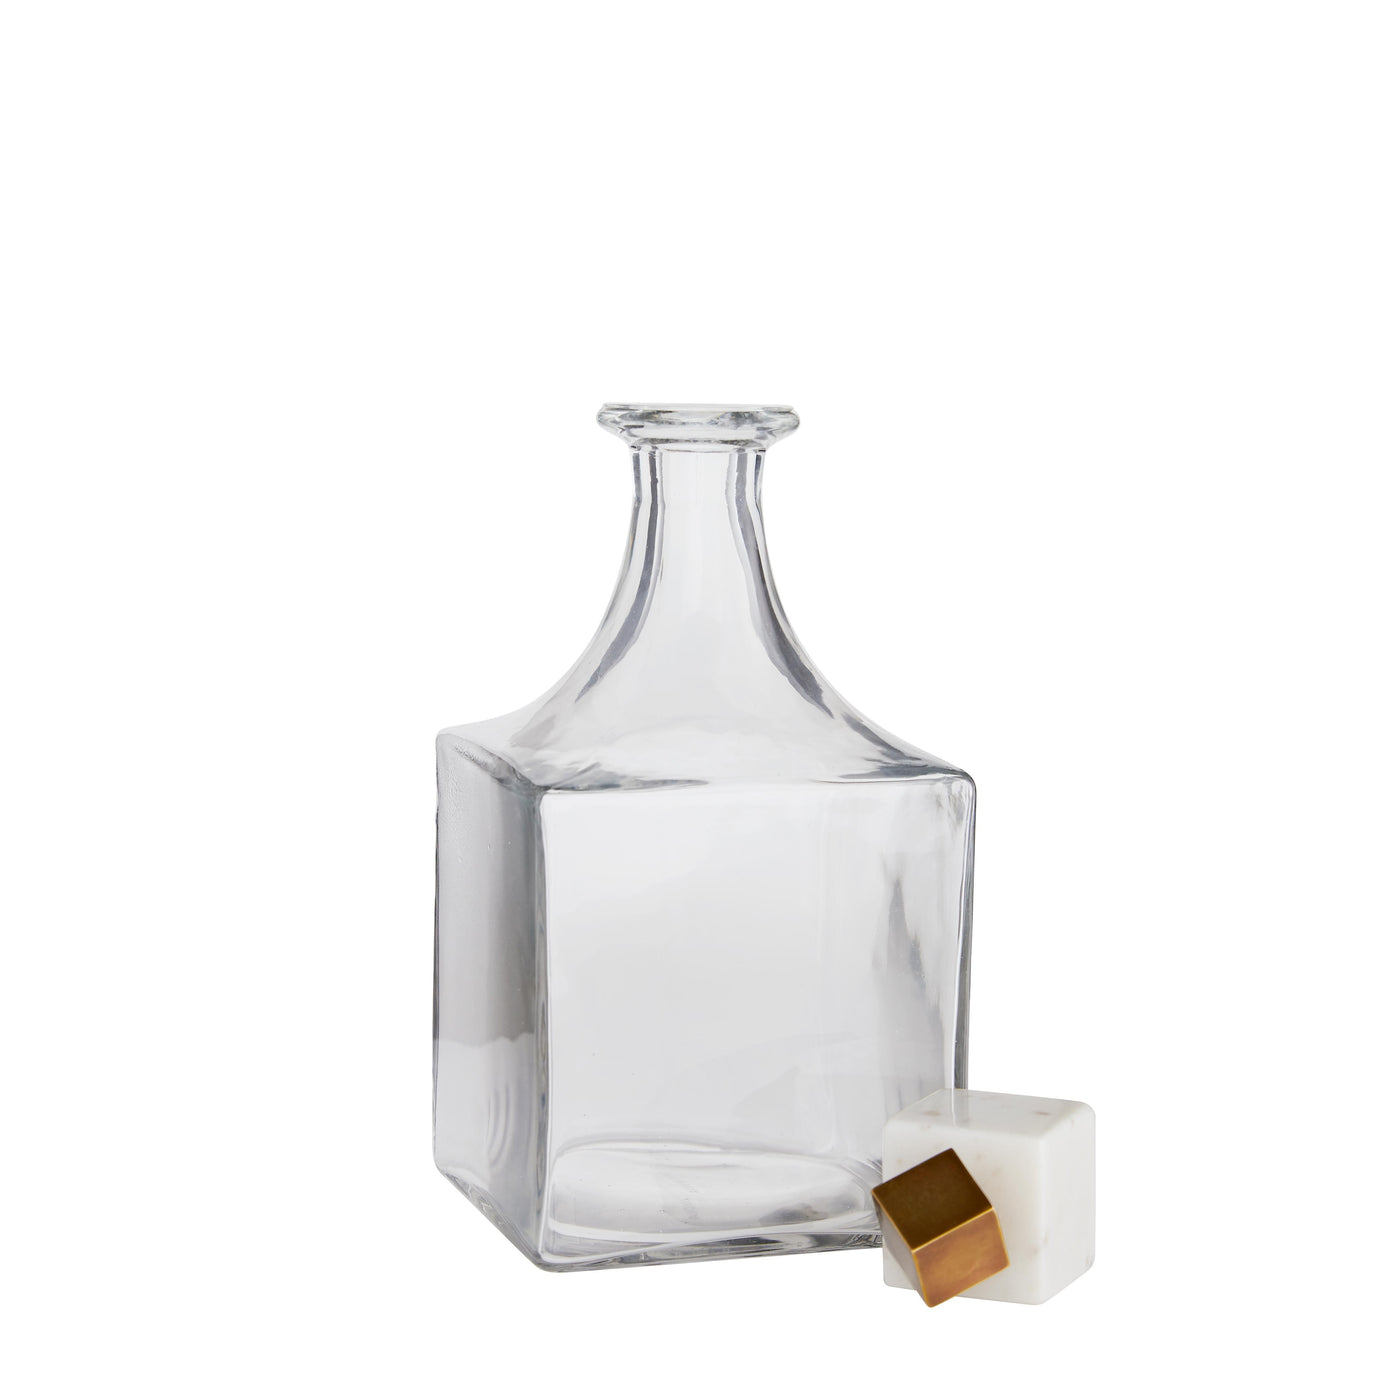 arteriors home Wilshire decanter glass square marble